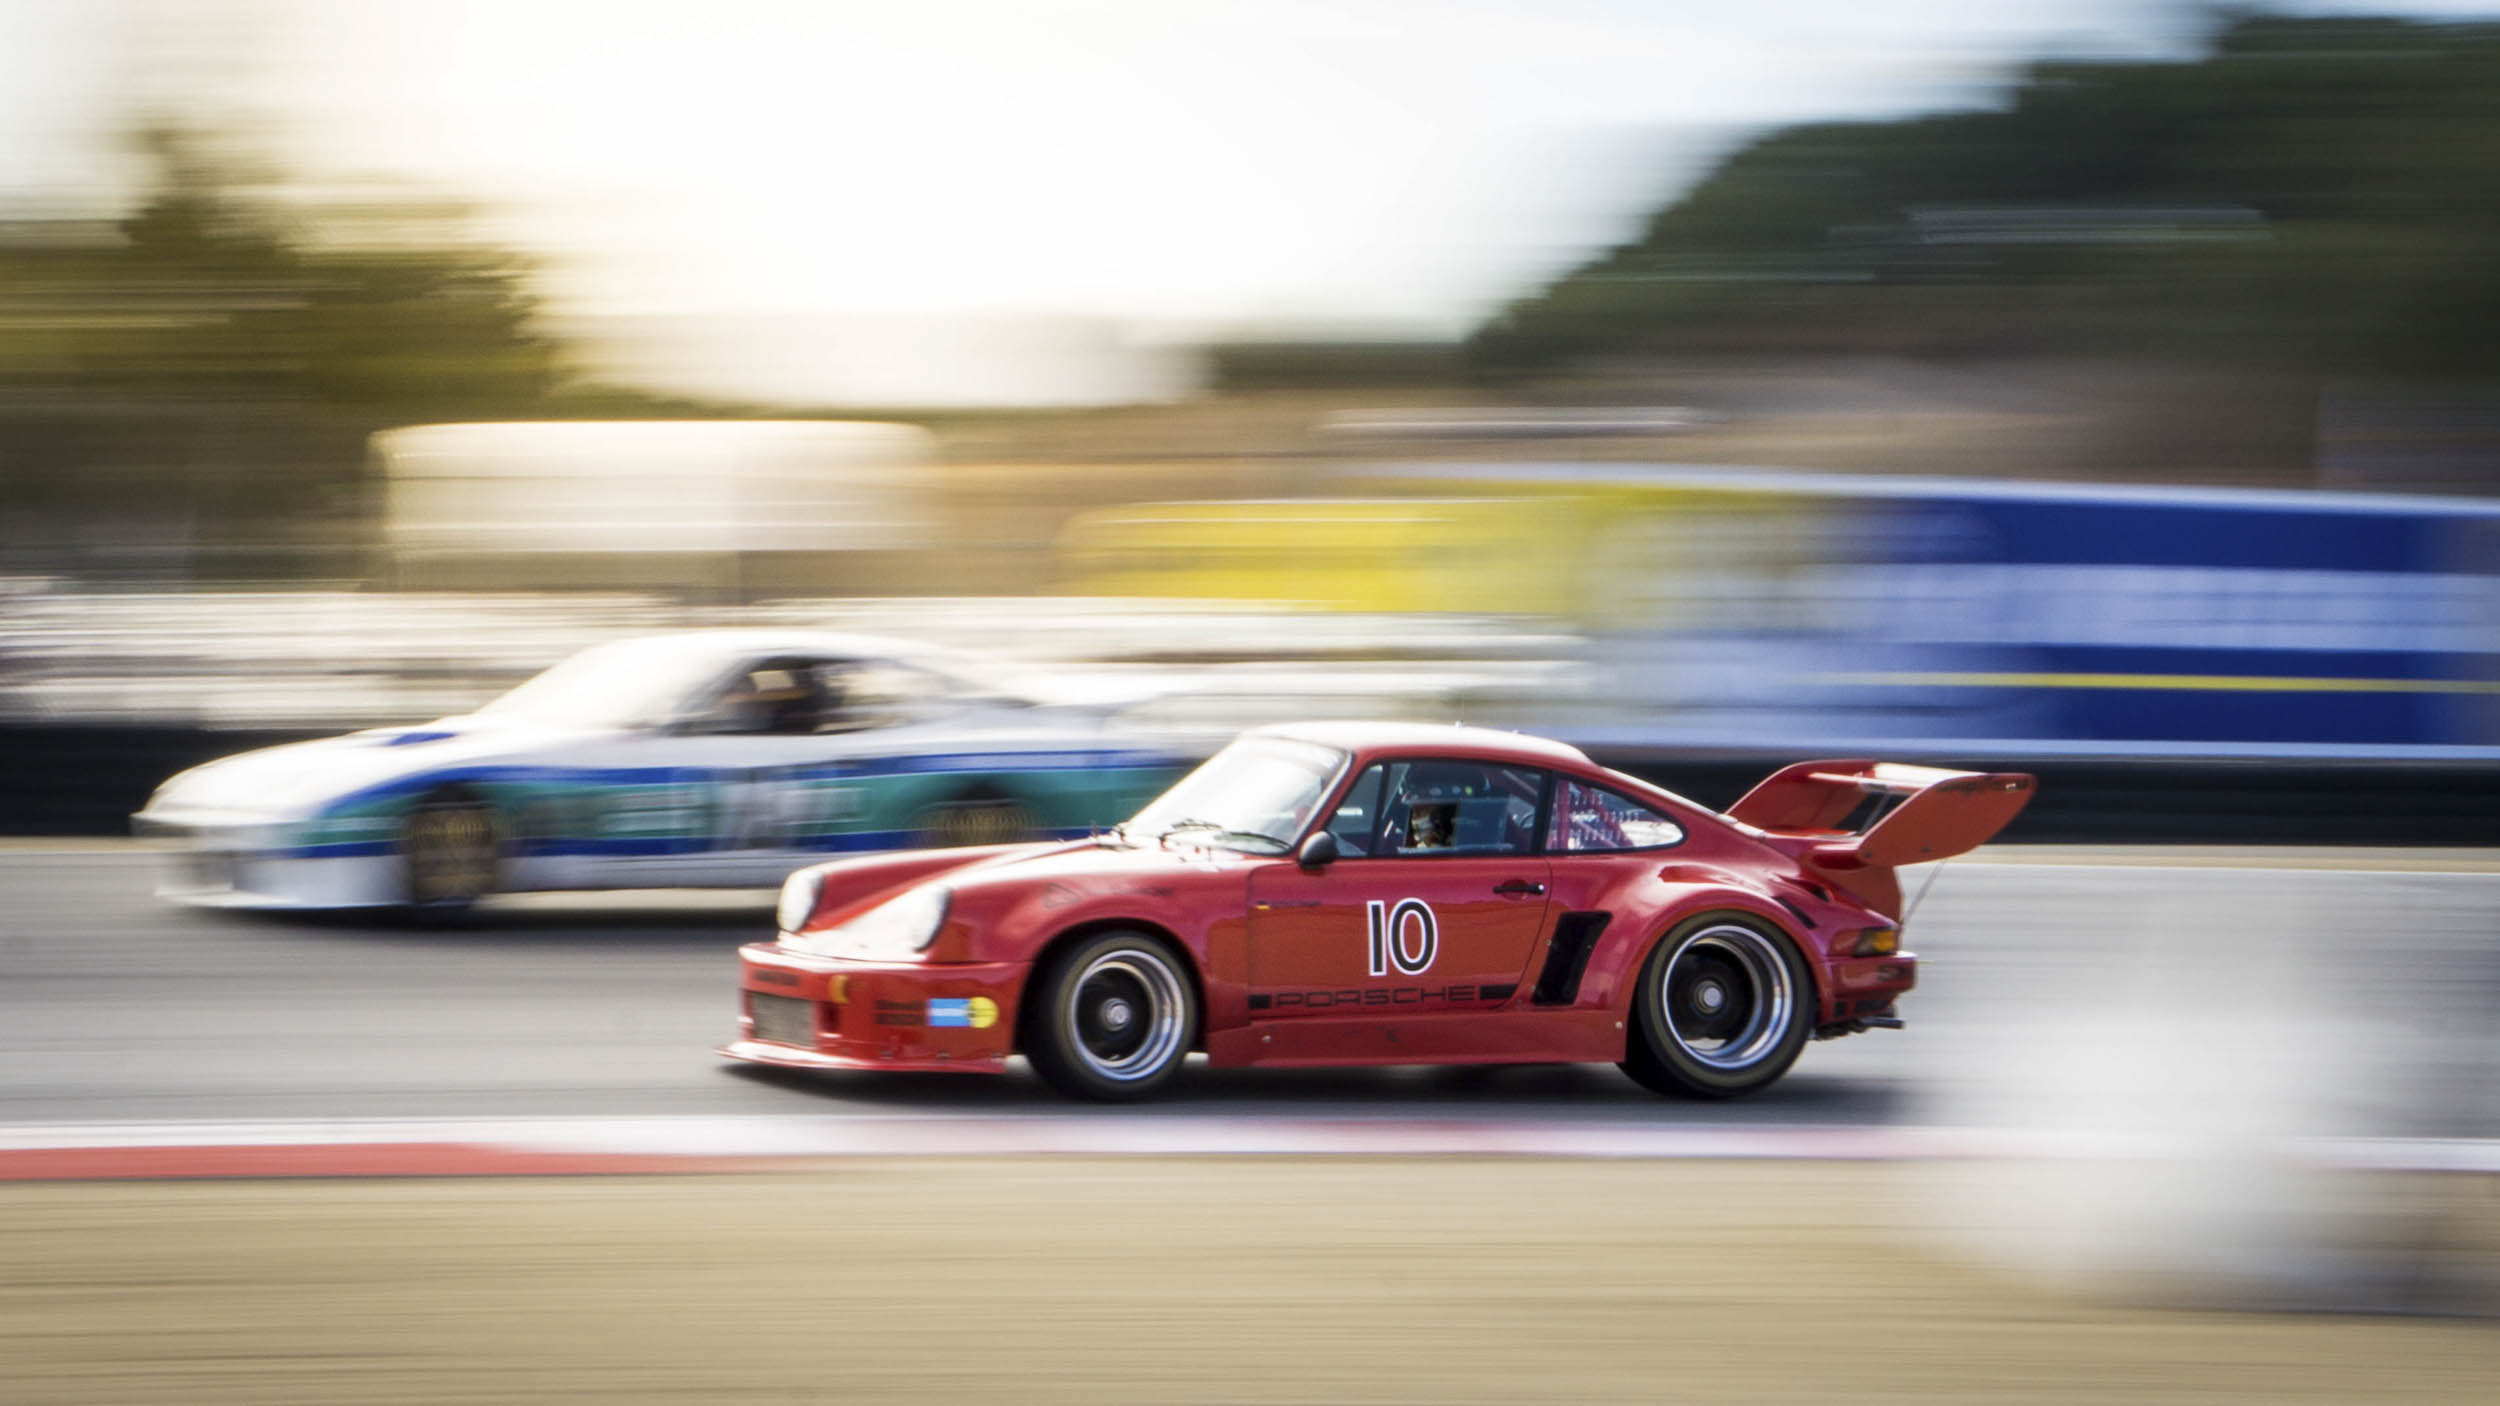 """Altfrid Heger had arguably the fastest car in the Weissach Cup group. A precursor to the 1978  """"Moby Dick"""" 935, his 1976 Porsche 935 ate up the competition."""